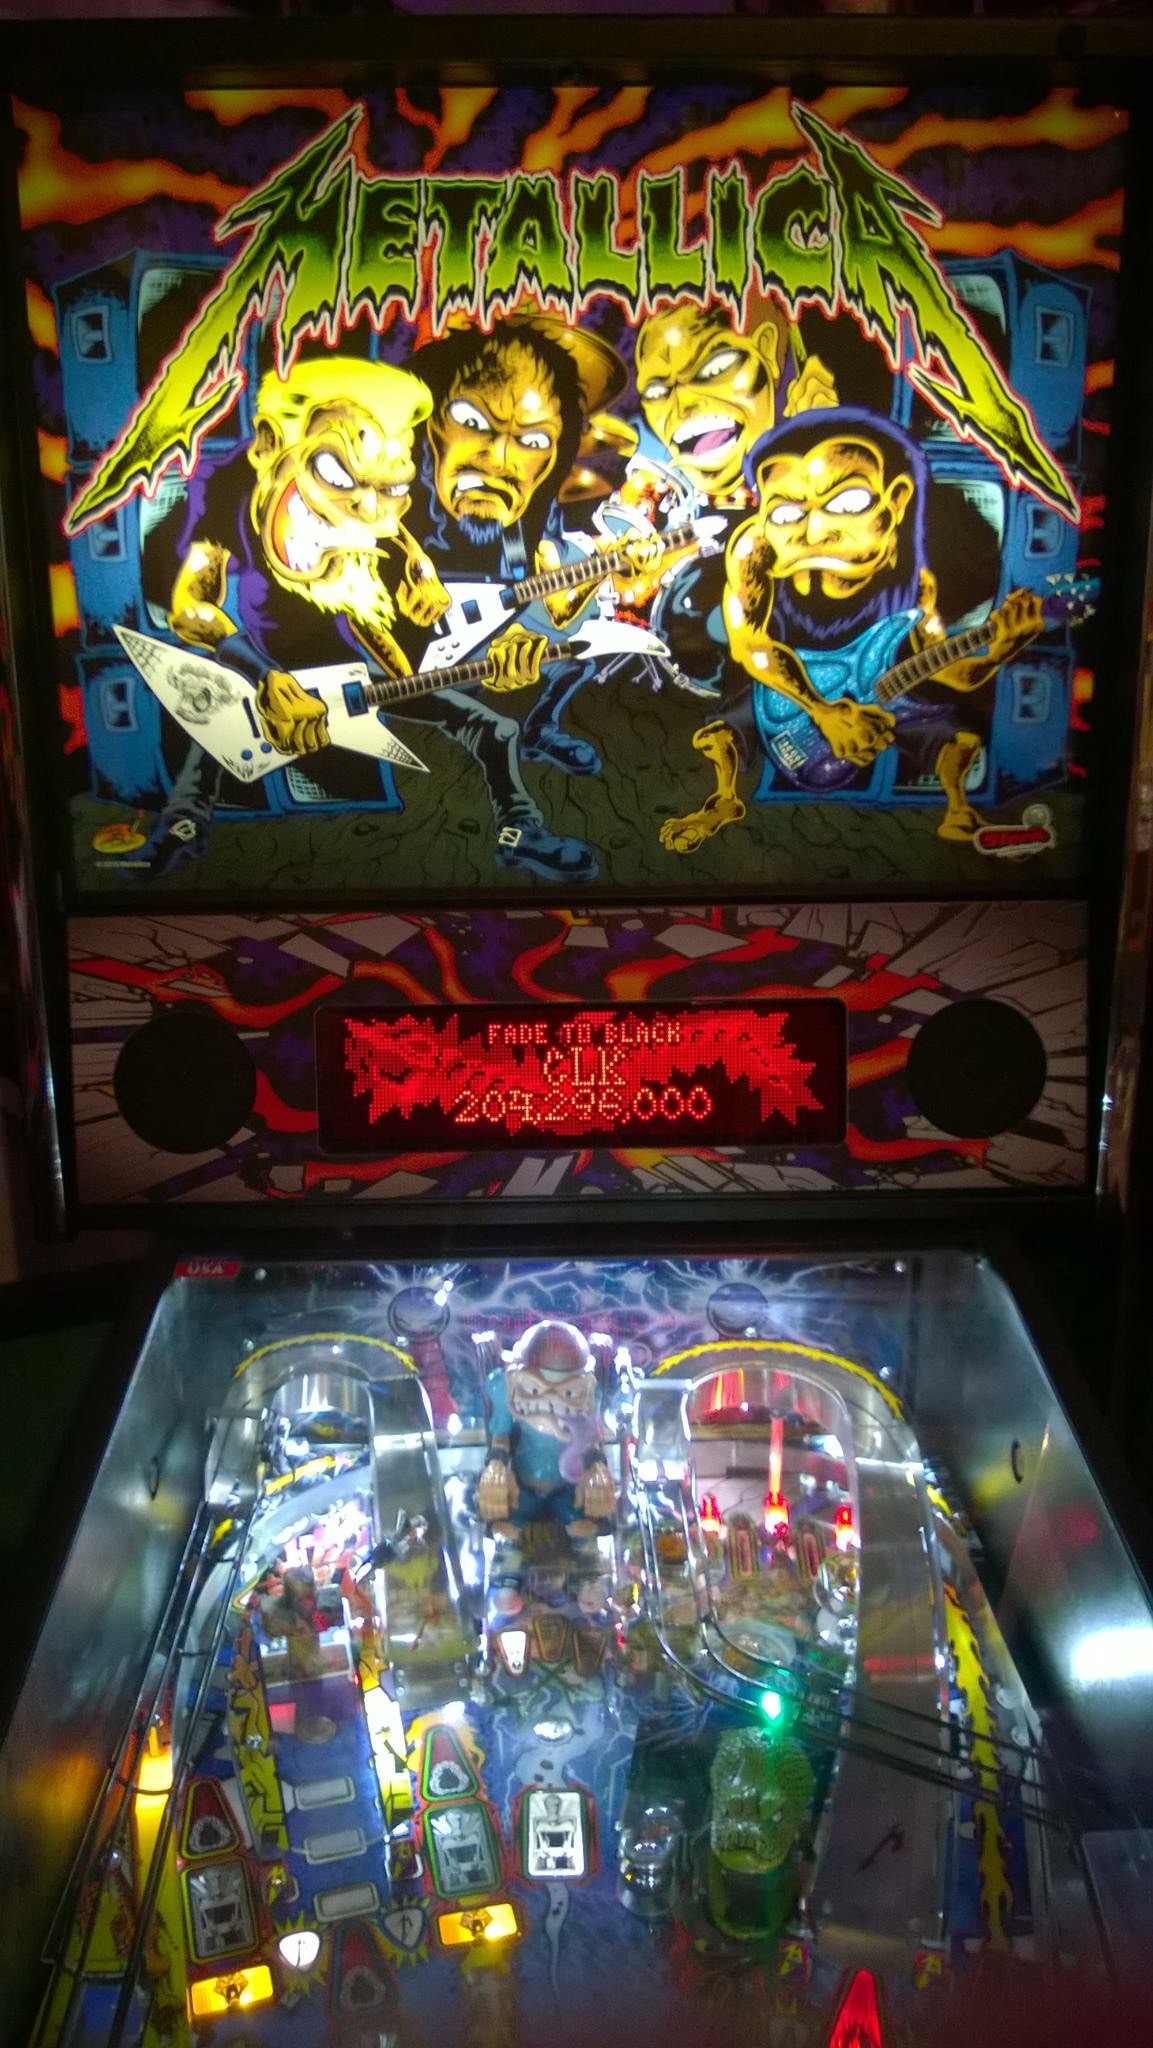 keilbaca: Metallica: Fade to Black (Pinball Bonus Mode) 204,296,000 points on 2017-03-02 02:26:05